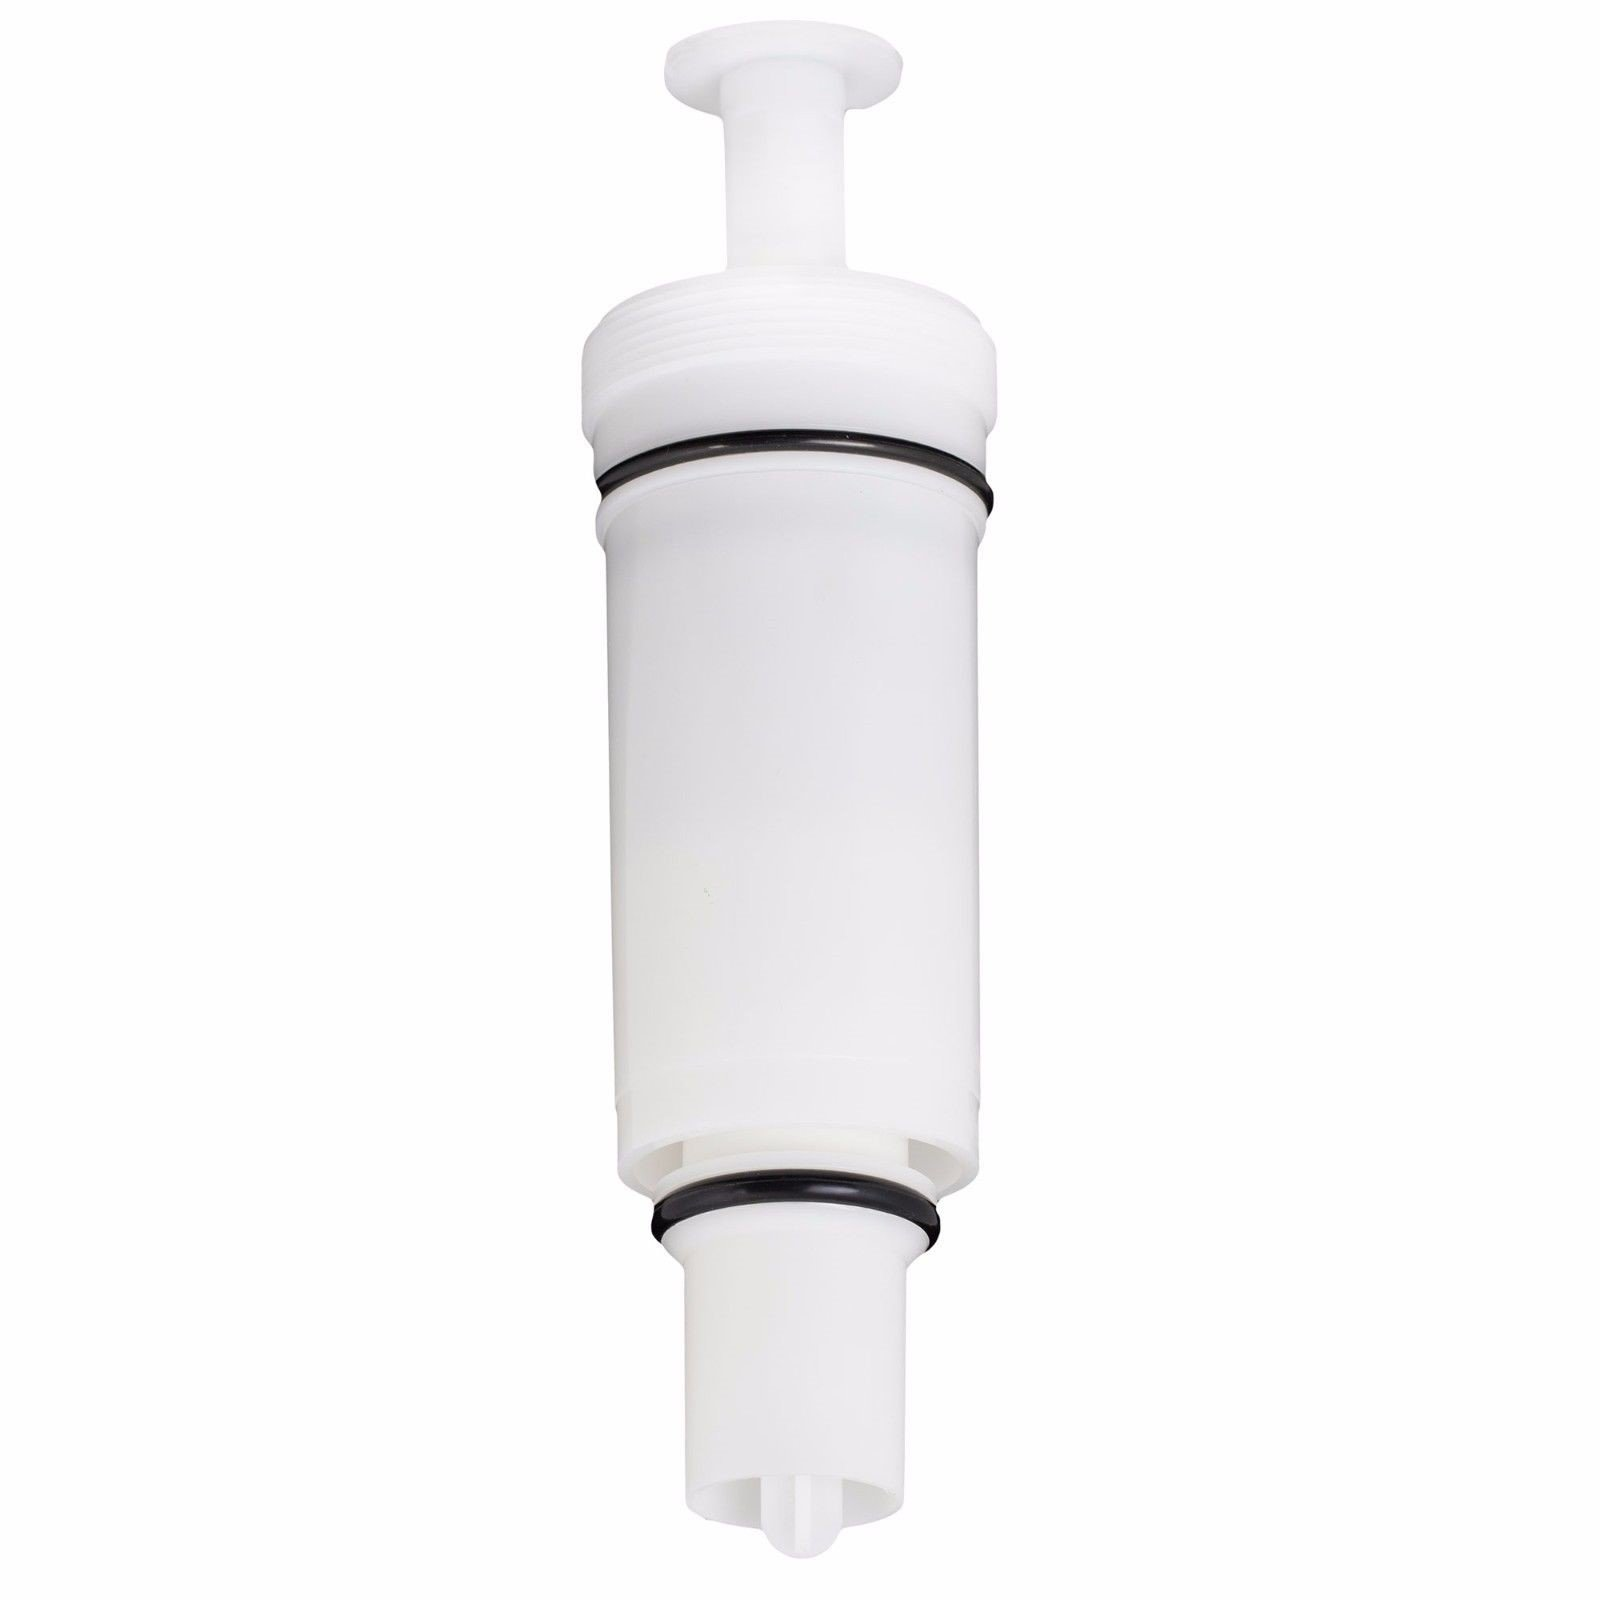 Replacement for Sloan Flushmate Flush Valve Cartridge Assembly, C-100500-K Gxfc